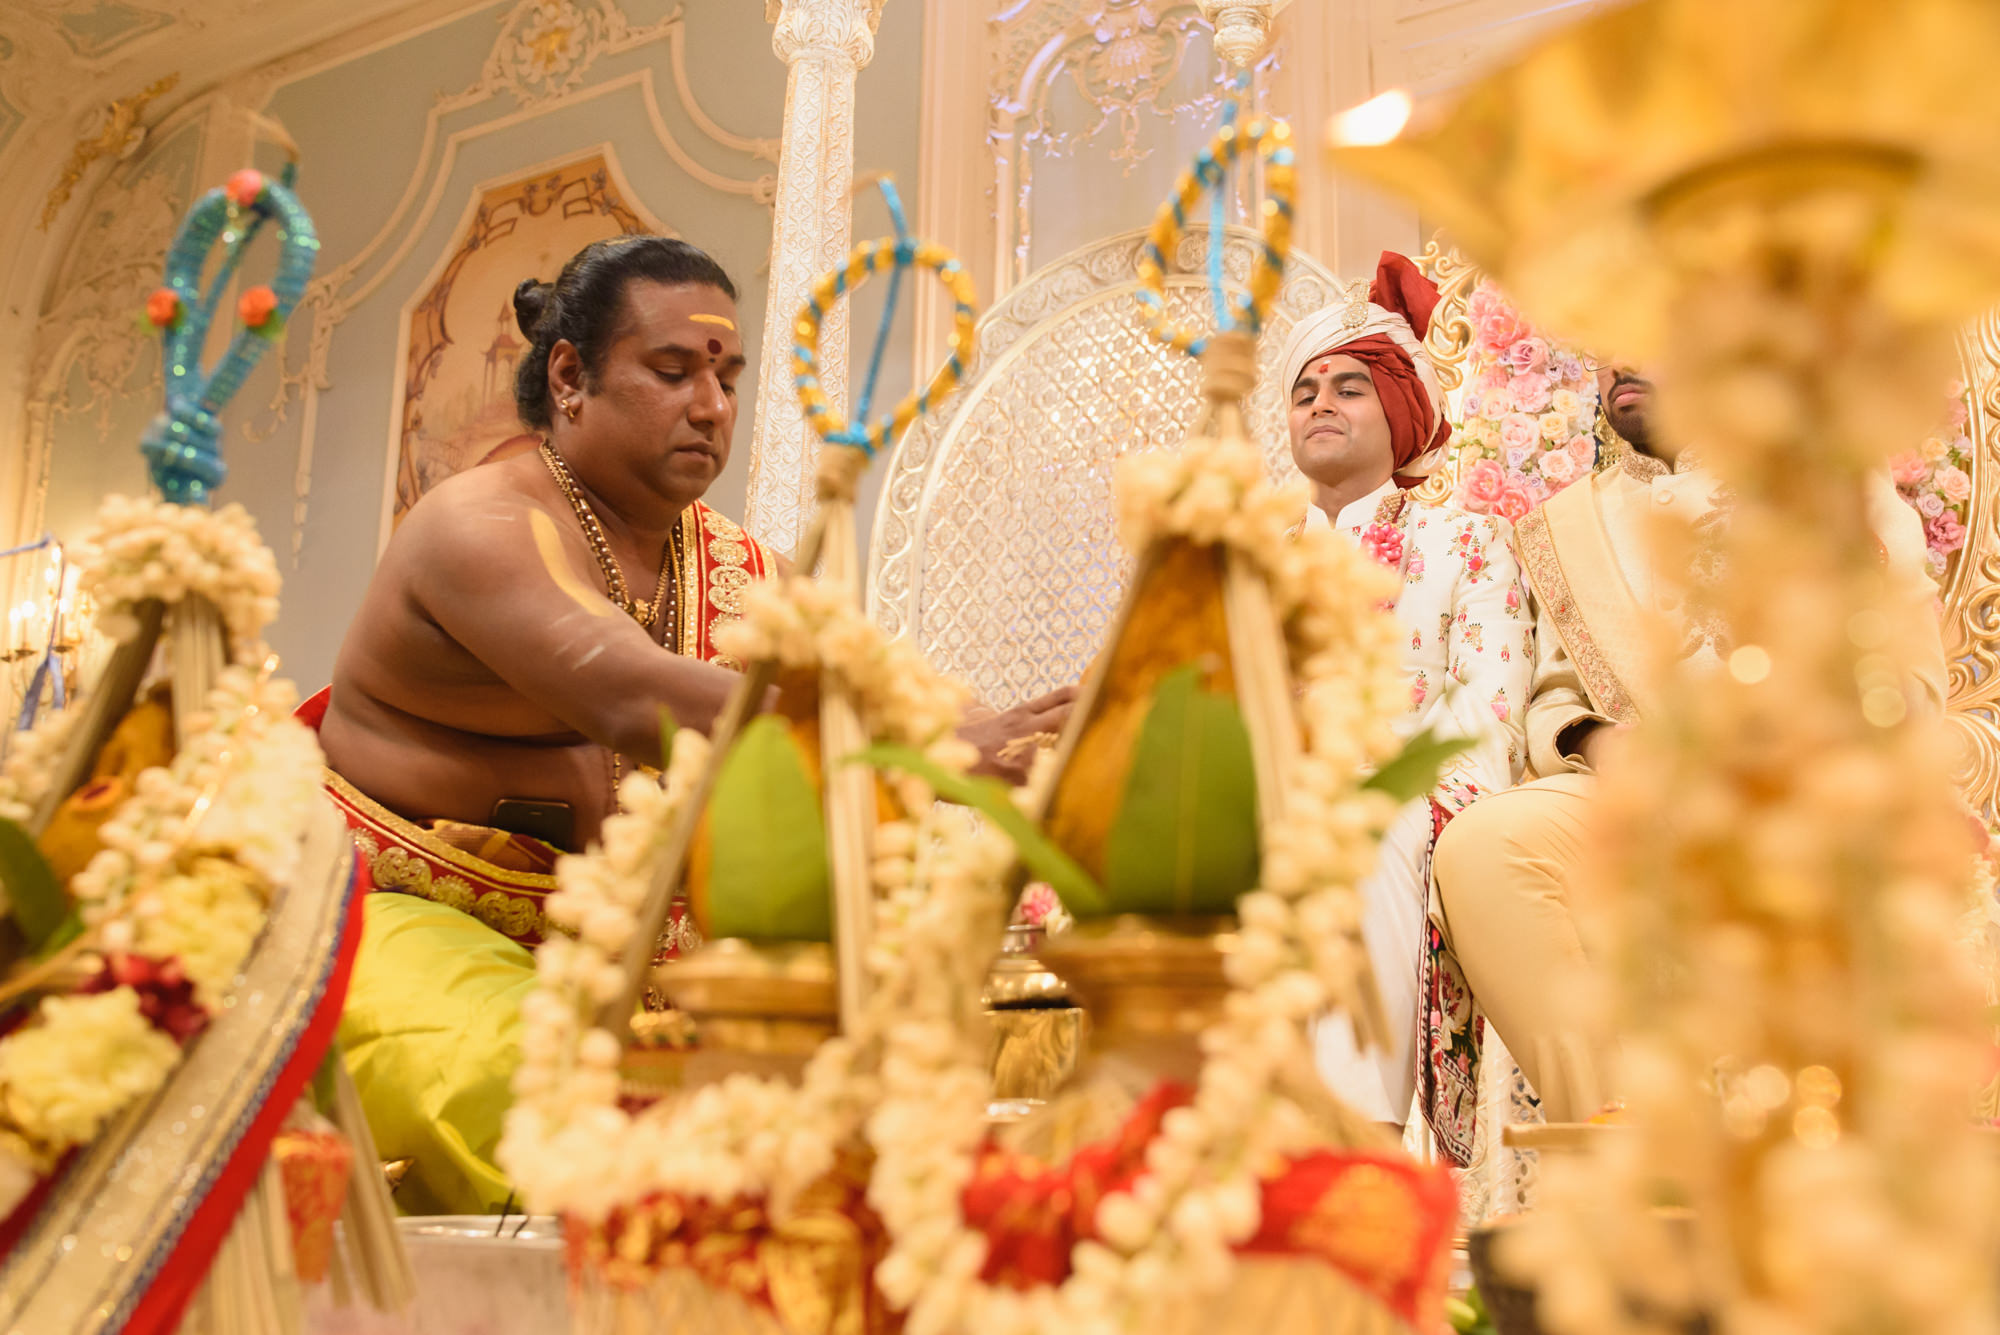 Tamil Gujrati hindu wedding photography photographer london the savoy -34.jpg